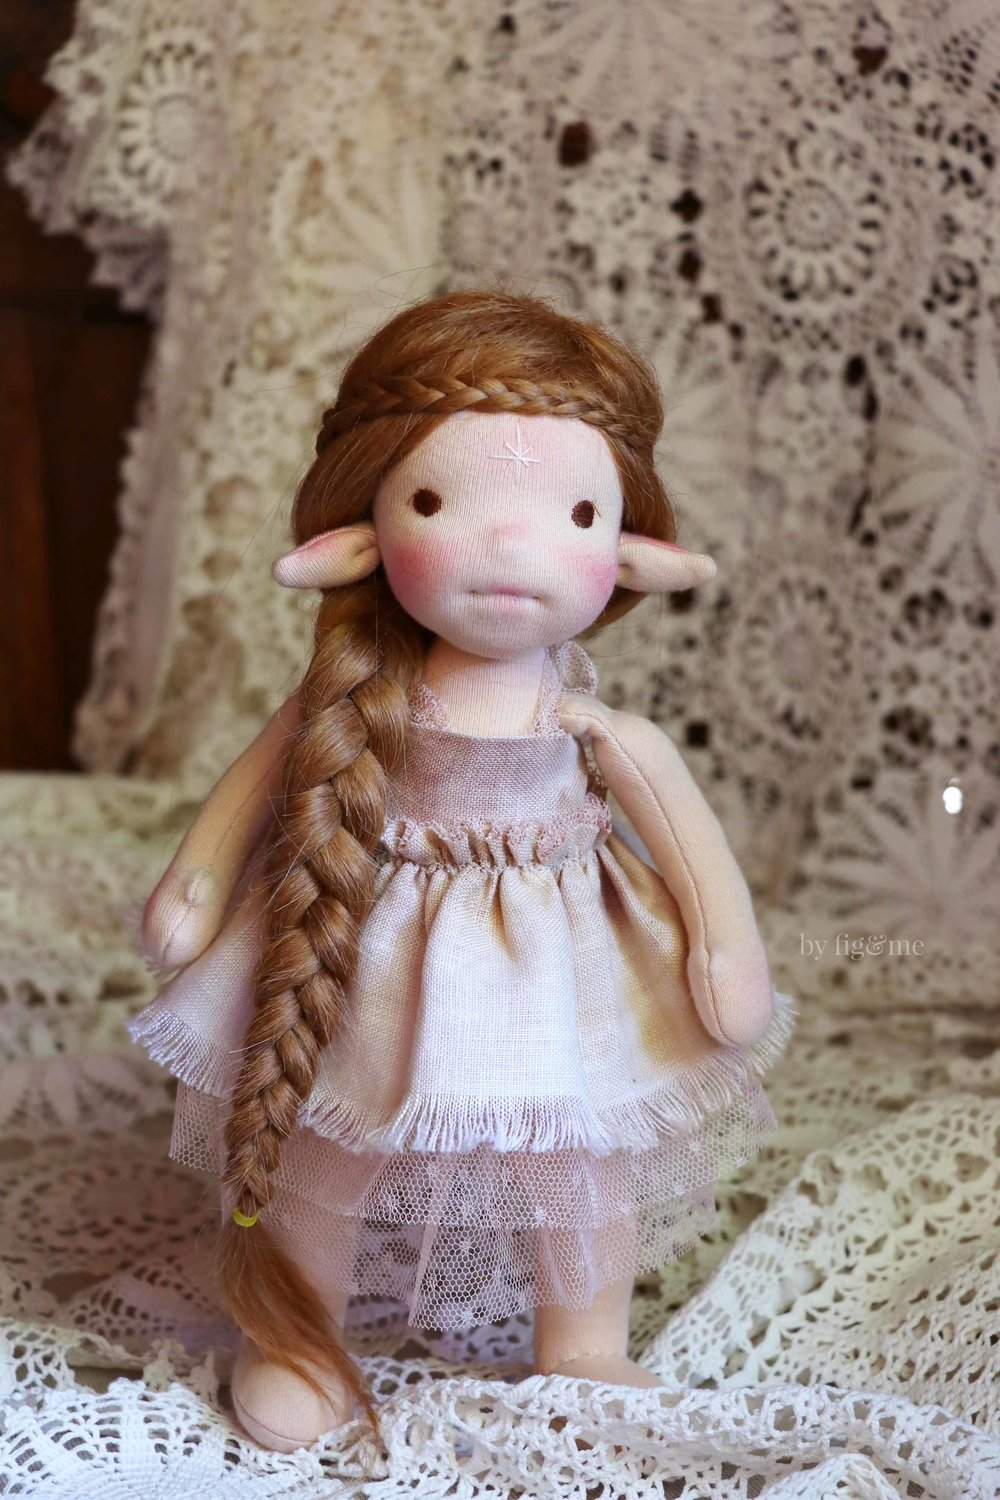 Take an online doll making class with Fig and me and learn how to make this magical creature.